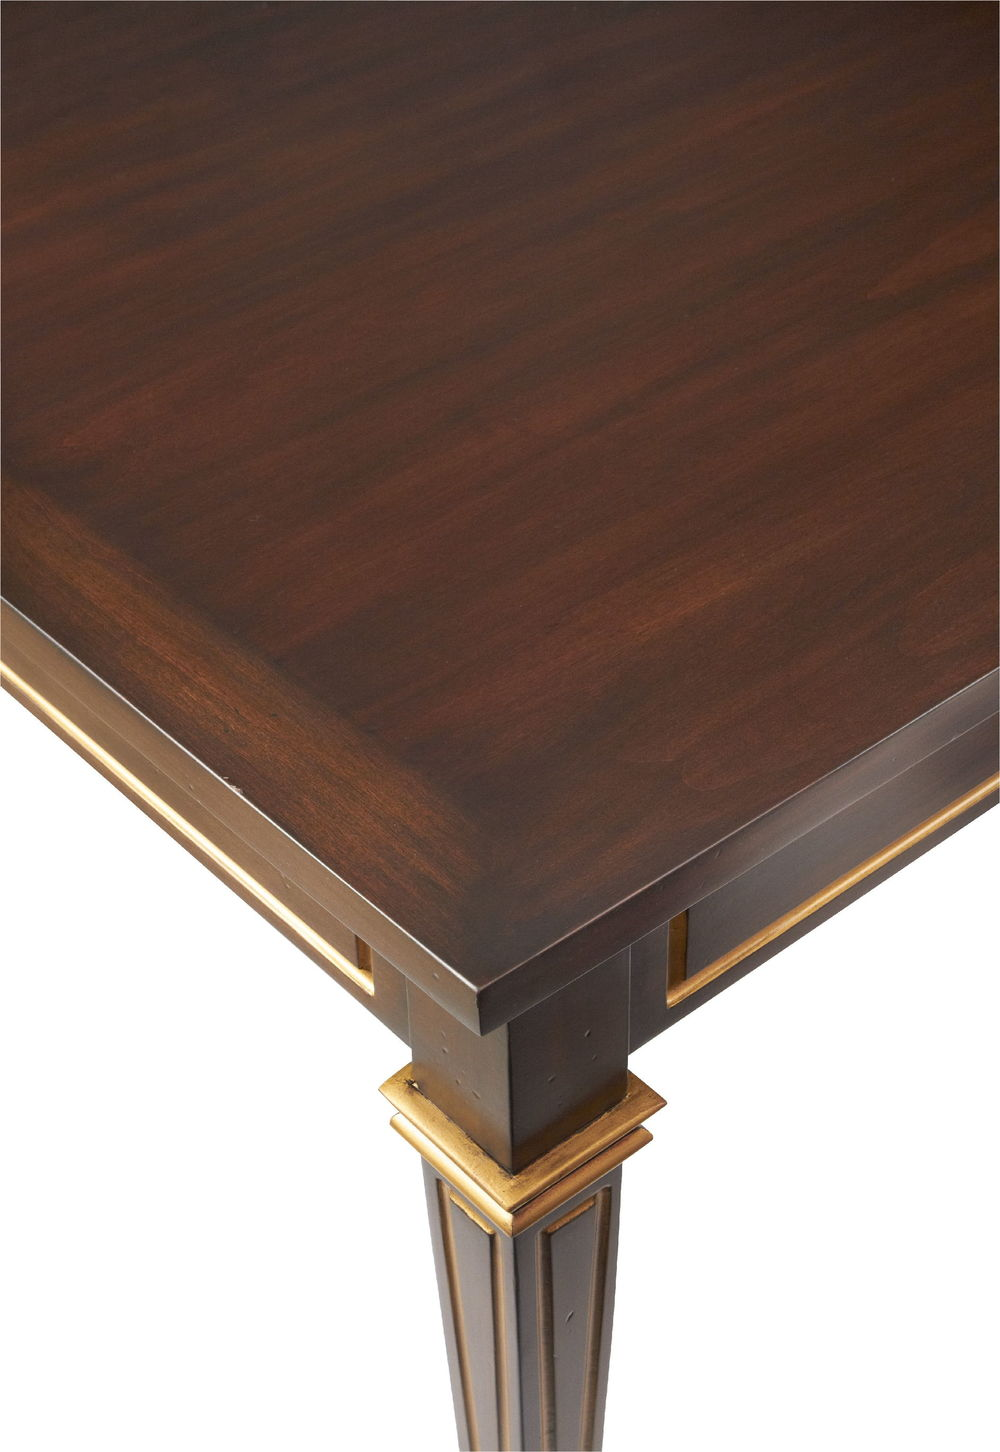 Chaddock - Regent Dining Table